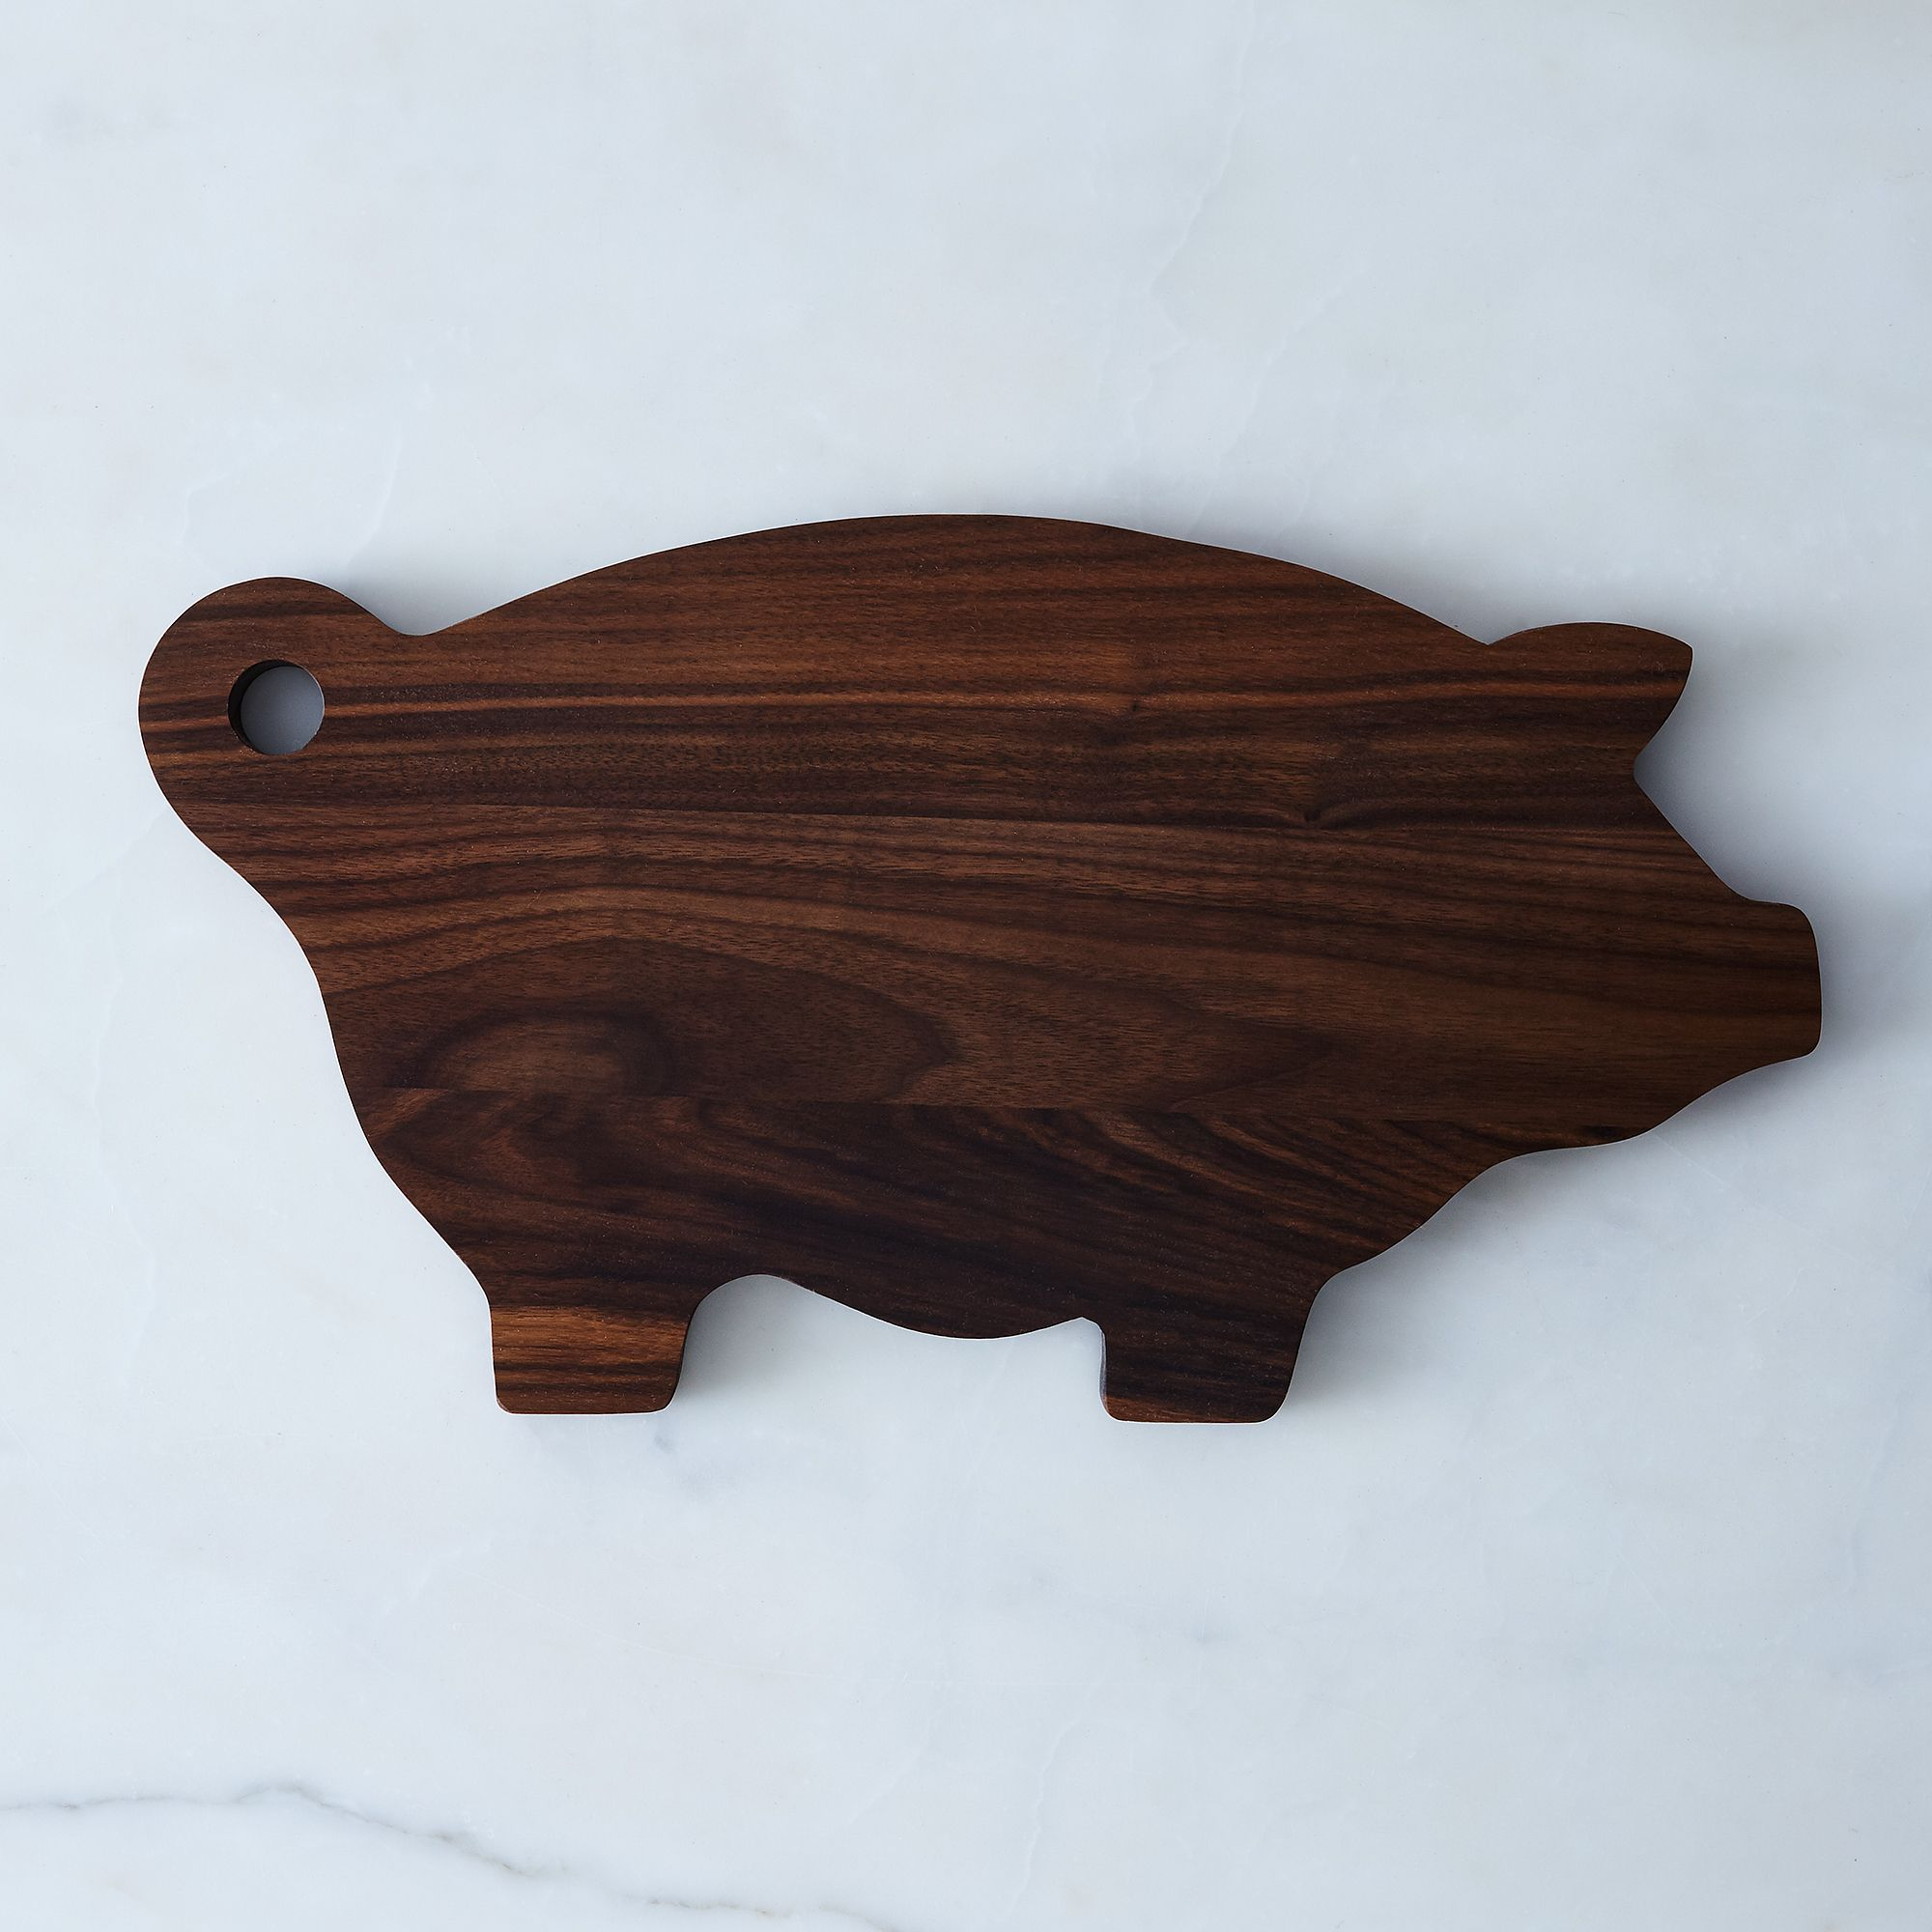 Pig Cutting Board - Walnut